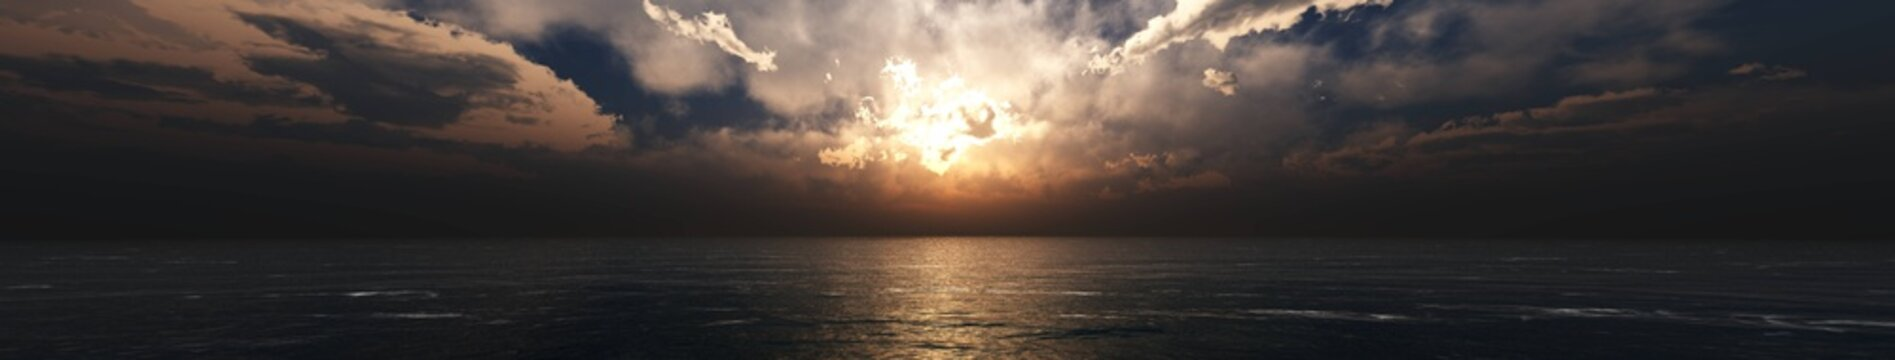 Thunderstorm clouds over the sea at sunset, panorama of a stormy sea,